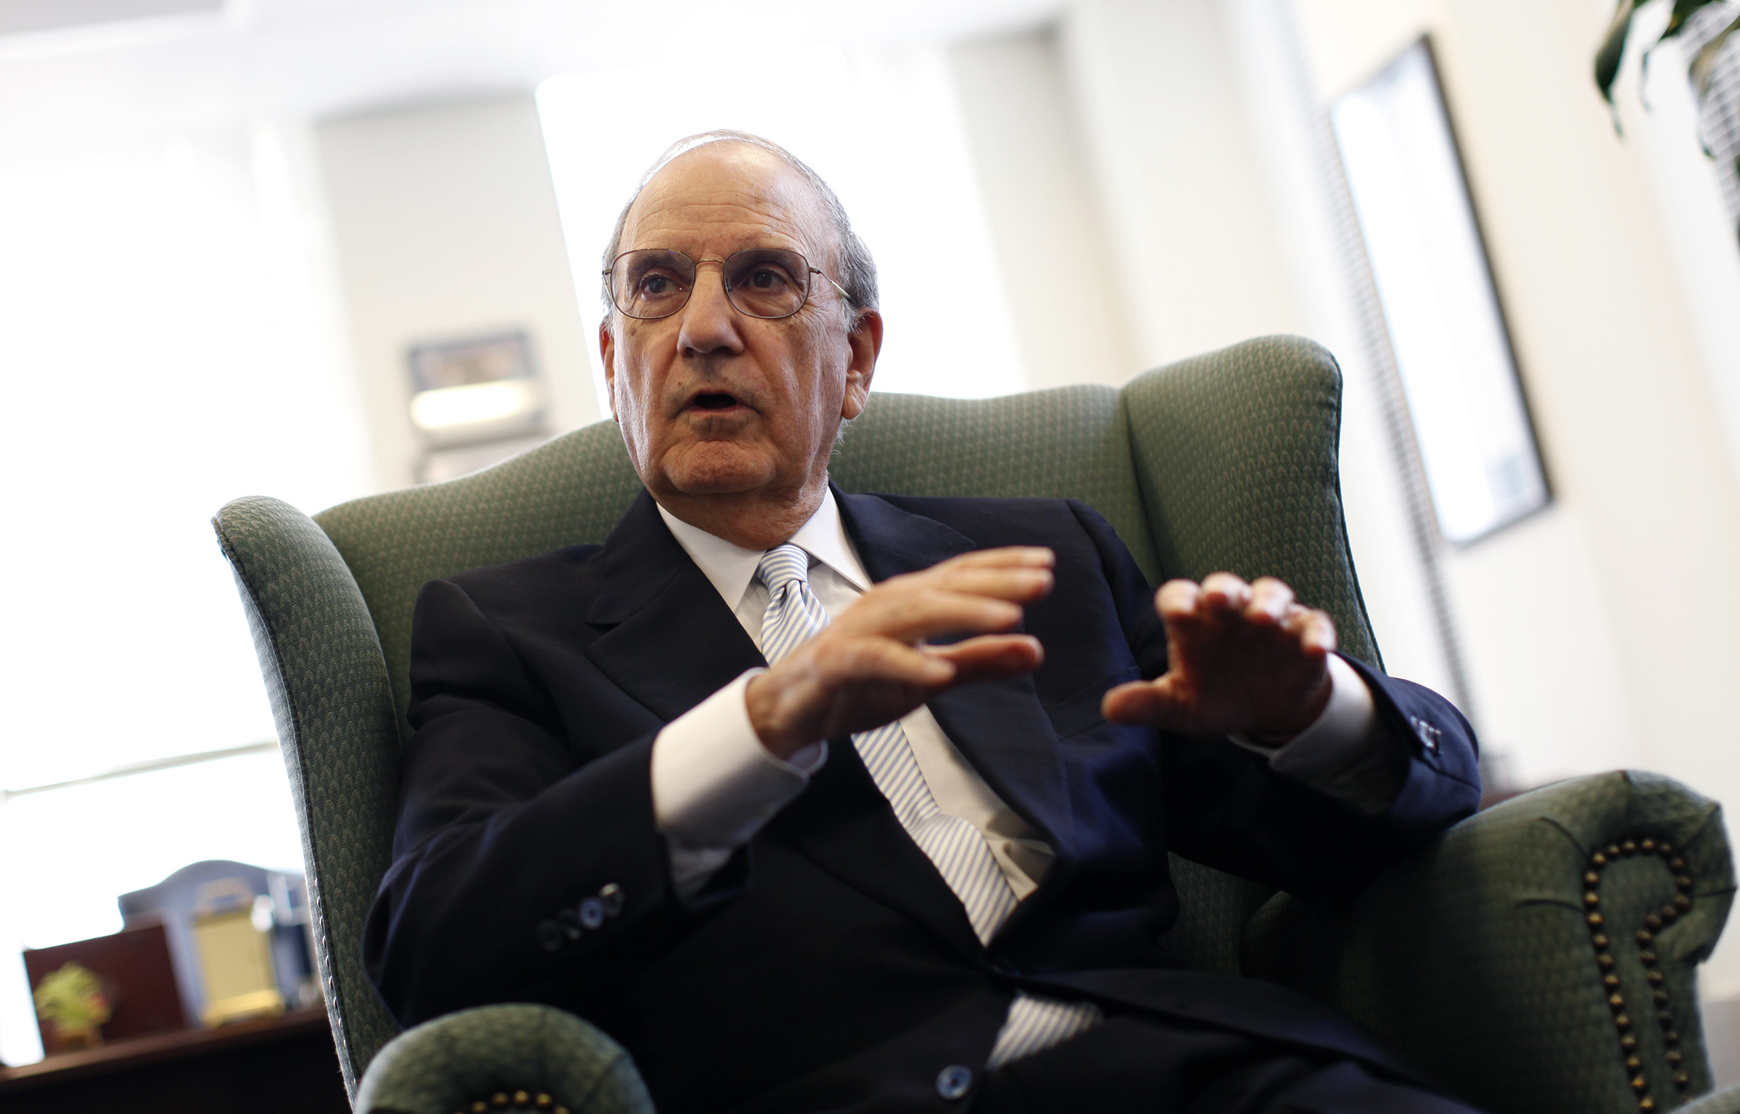 Former US Special Envoy for Middle East Peace and U.S. Senator from Maine George Mitchell in his office at DLA Piper, a law firm in New York during an interview with Reuters